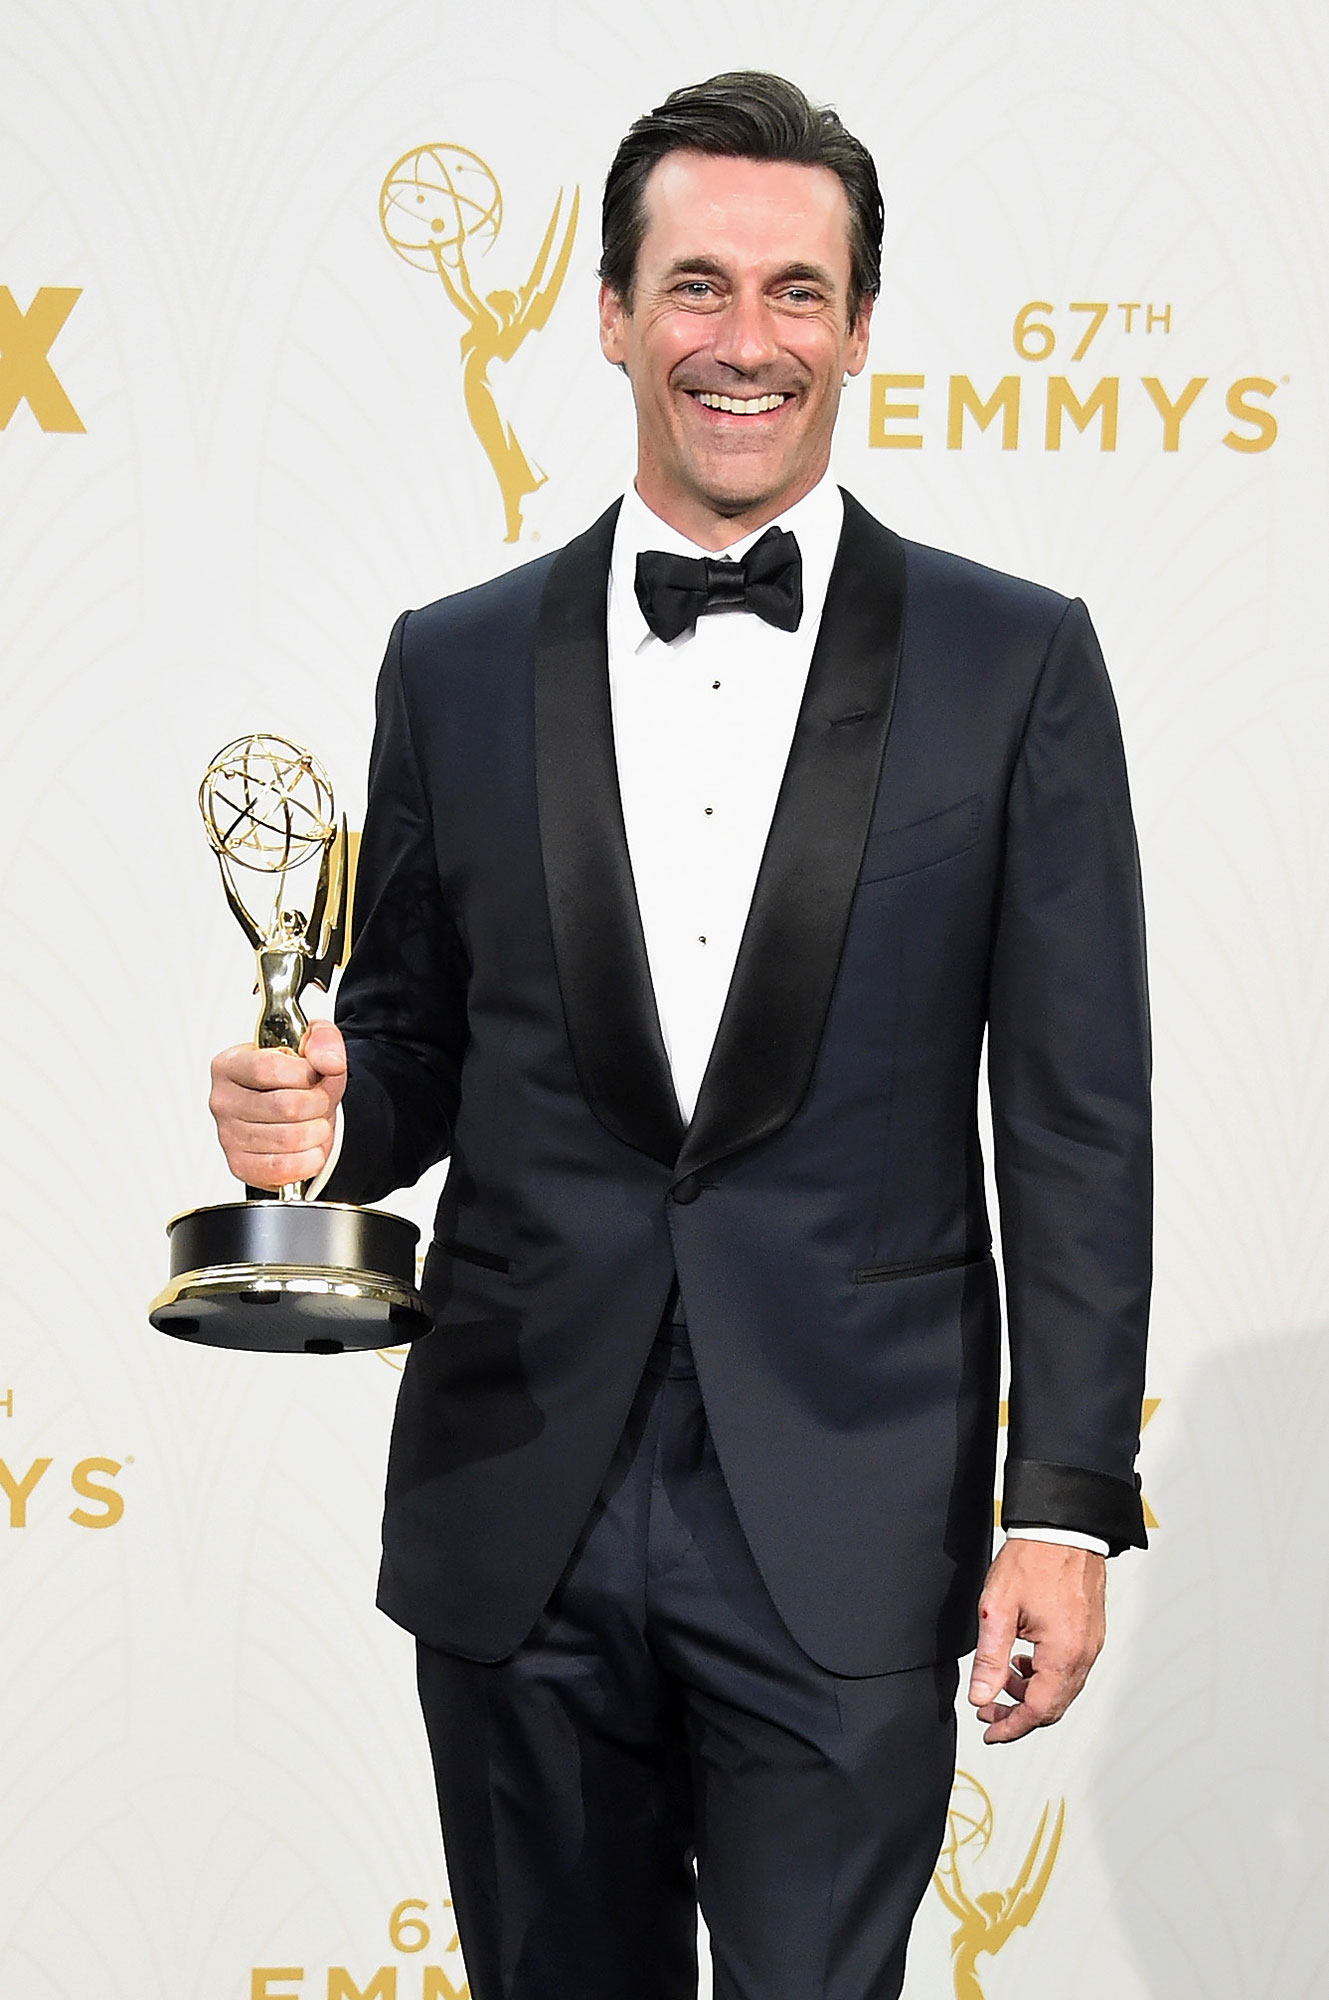 Jon Hamm Teachers Before Fame - Teaching was a backup plan for the Mad Men alum, who always wanted to be an actor, but knew it would be hard to make it in Hollywood. Hamm worked at a daycare for three years while he was in college, and later taught drama at a high school in Missouri for one year after he graduated.